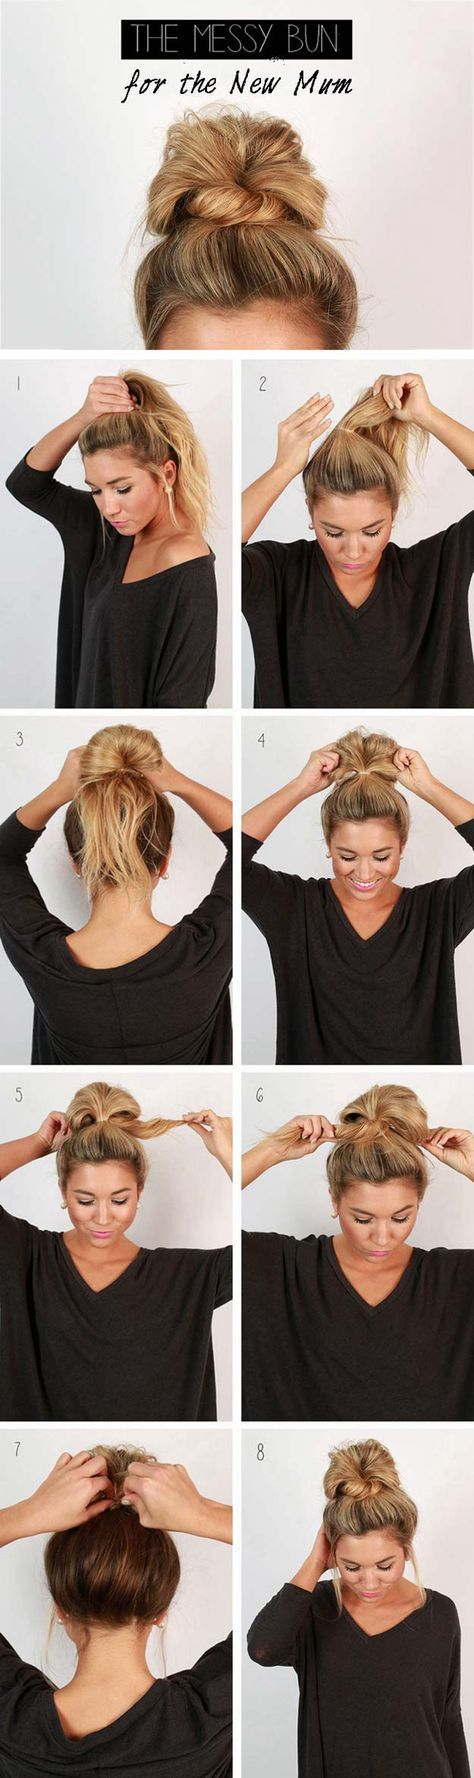 41 diy cool easy hairstyles that real people can actually do at 41 diy cool easy hairstyles that real people can actually do at home easy diy hairstyles braided top knots and teen prom solutioingenieria Choice Image